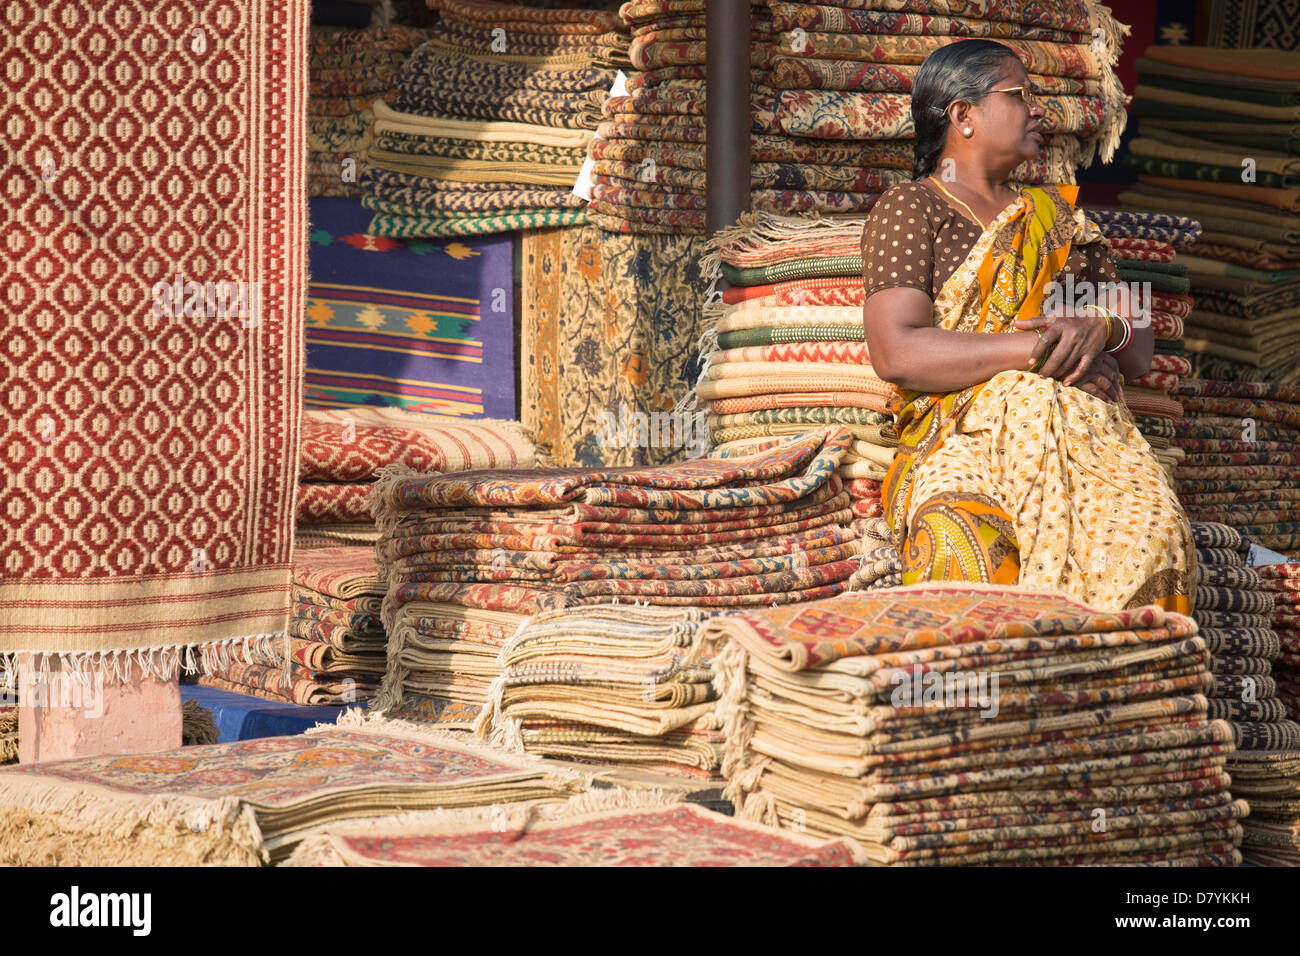 Woman selling carpets at Dili Haat in Delhi, India - Stock Image